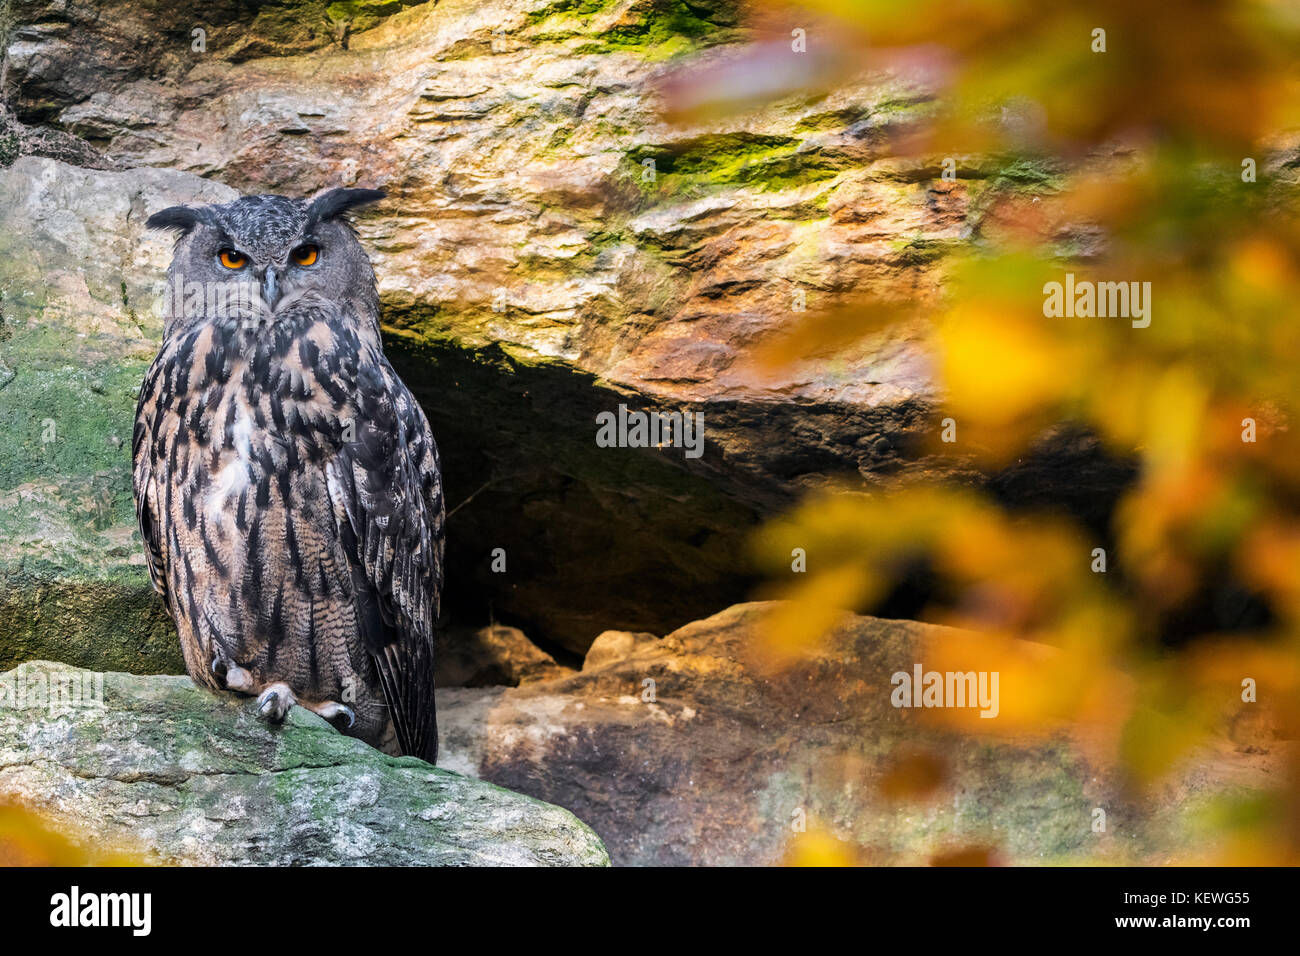 Eurasian eagle owl (Bubo bubo) sitting on rock ledge in cliff face in autumn forest - Stock Image